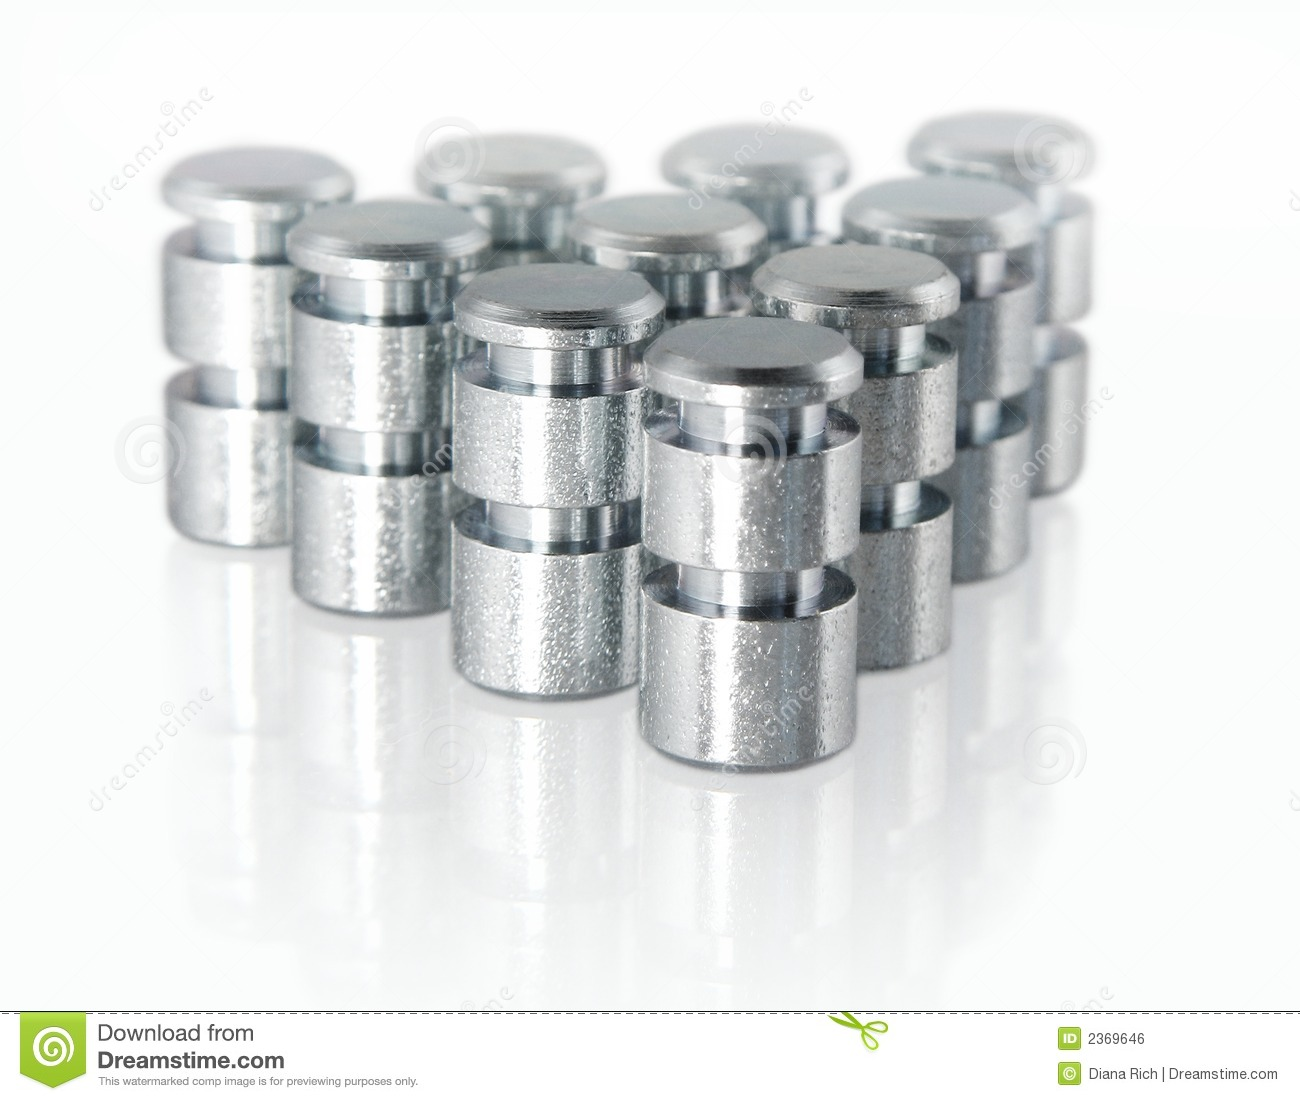 Small Aluminum Parts : Small metal parts stock photo image of machinery pegs